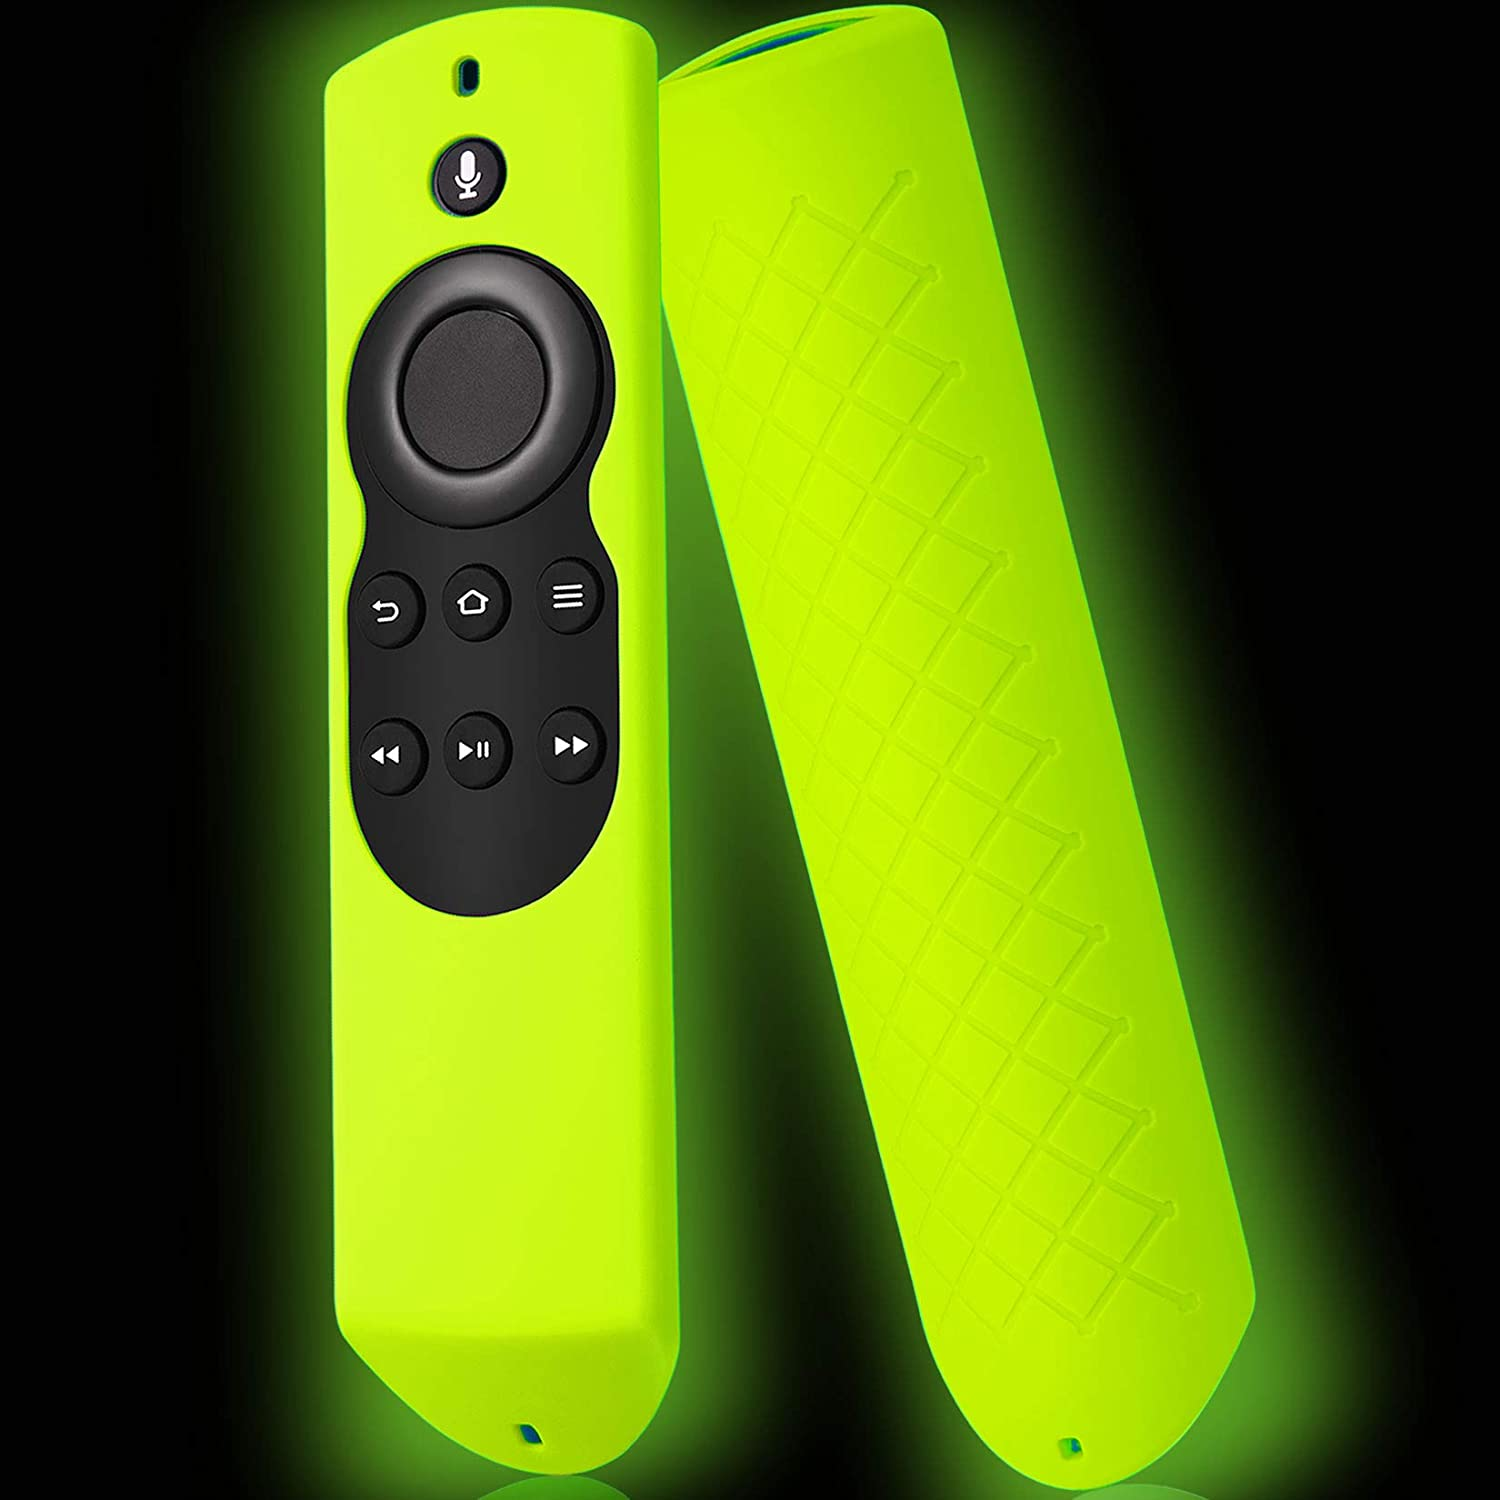 Firestick Cover Compatible with Amazon Fire Stick Remote, Cover for Fire Stick Remote Control Glow in The Dark, Firestickremote Cover Green